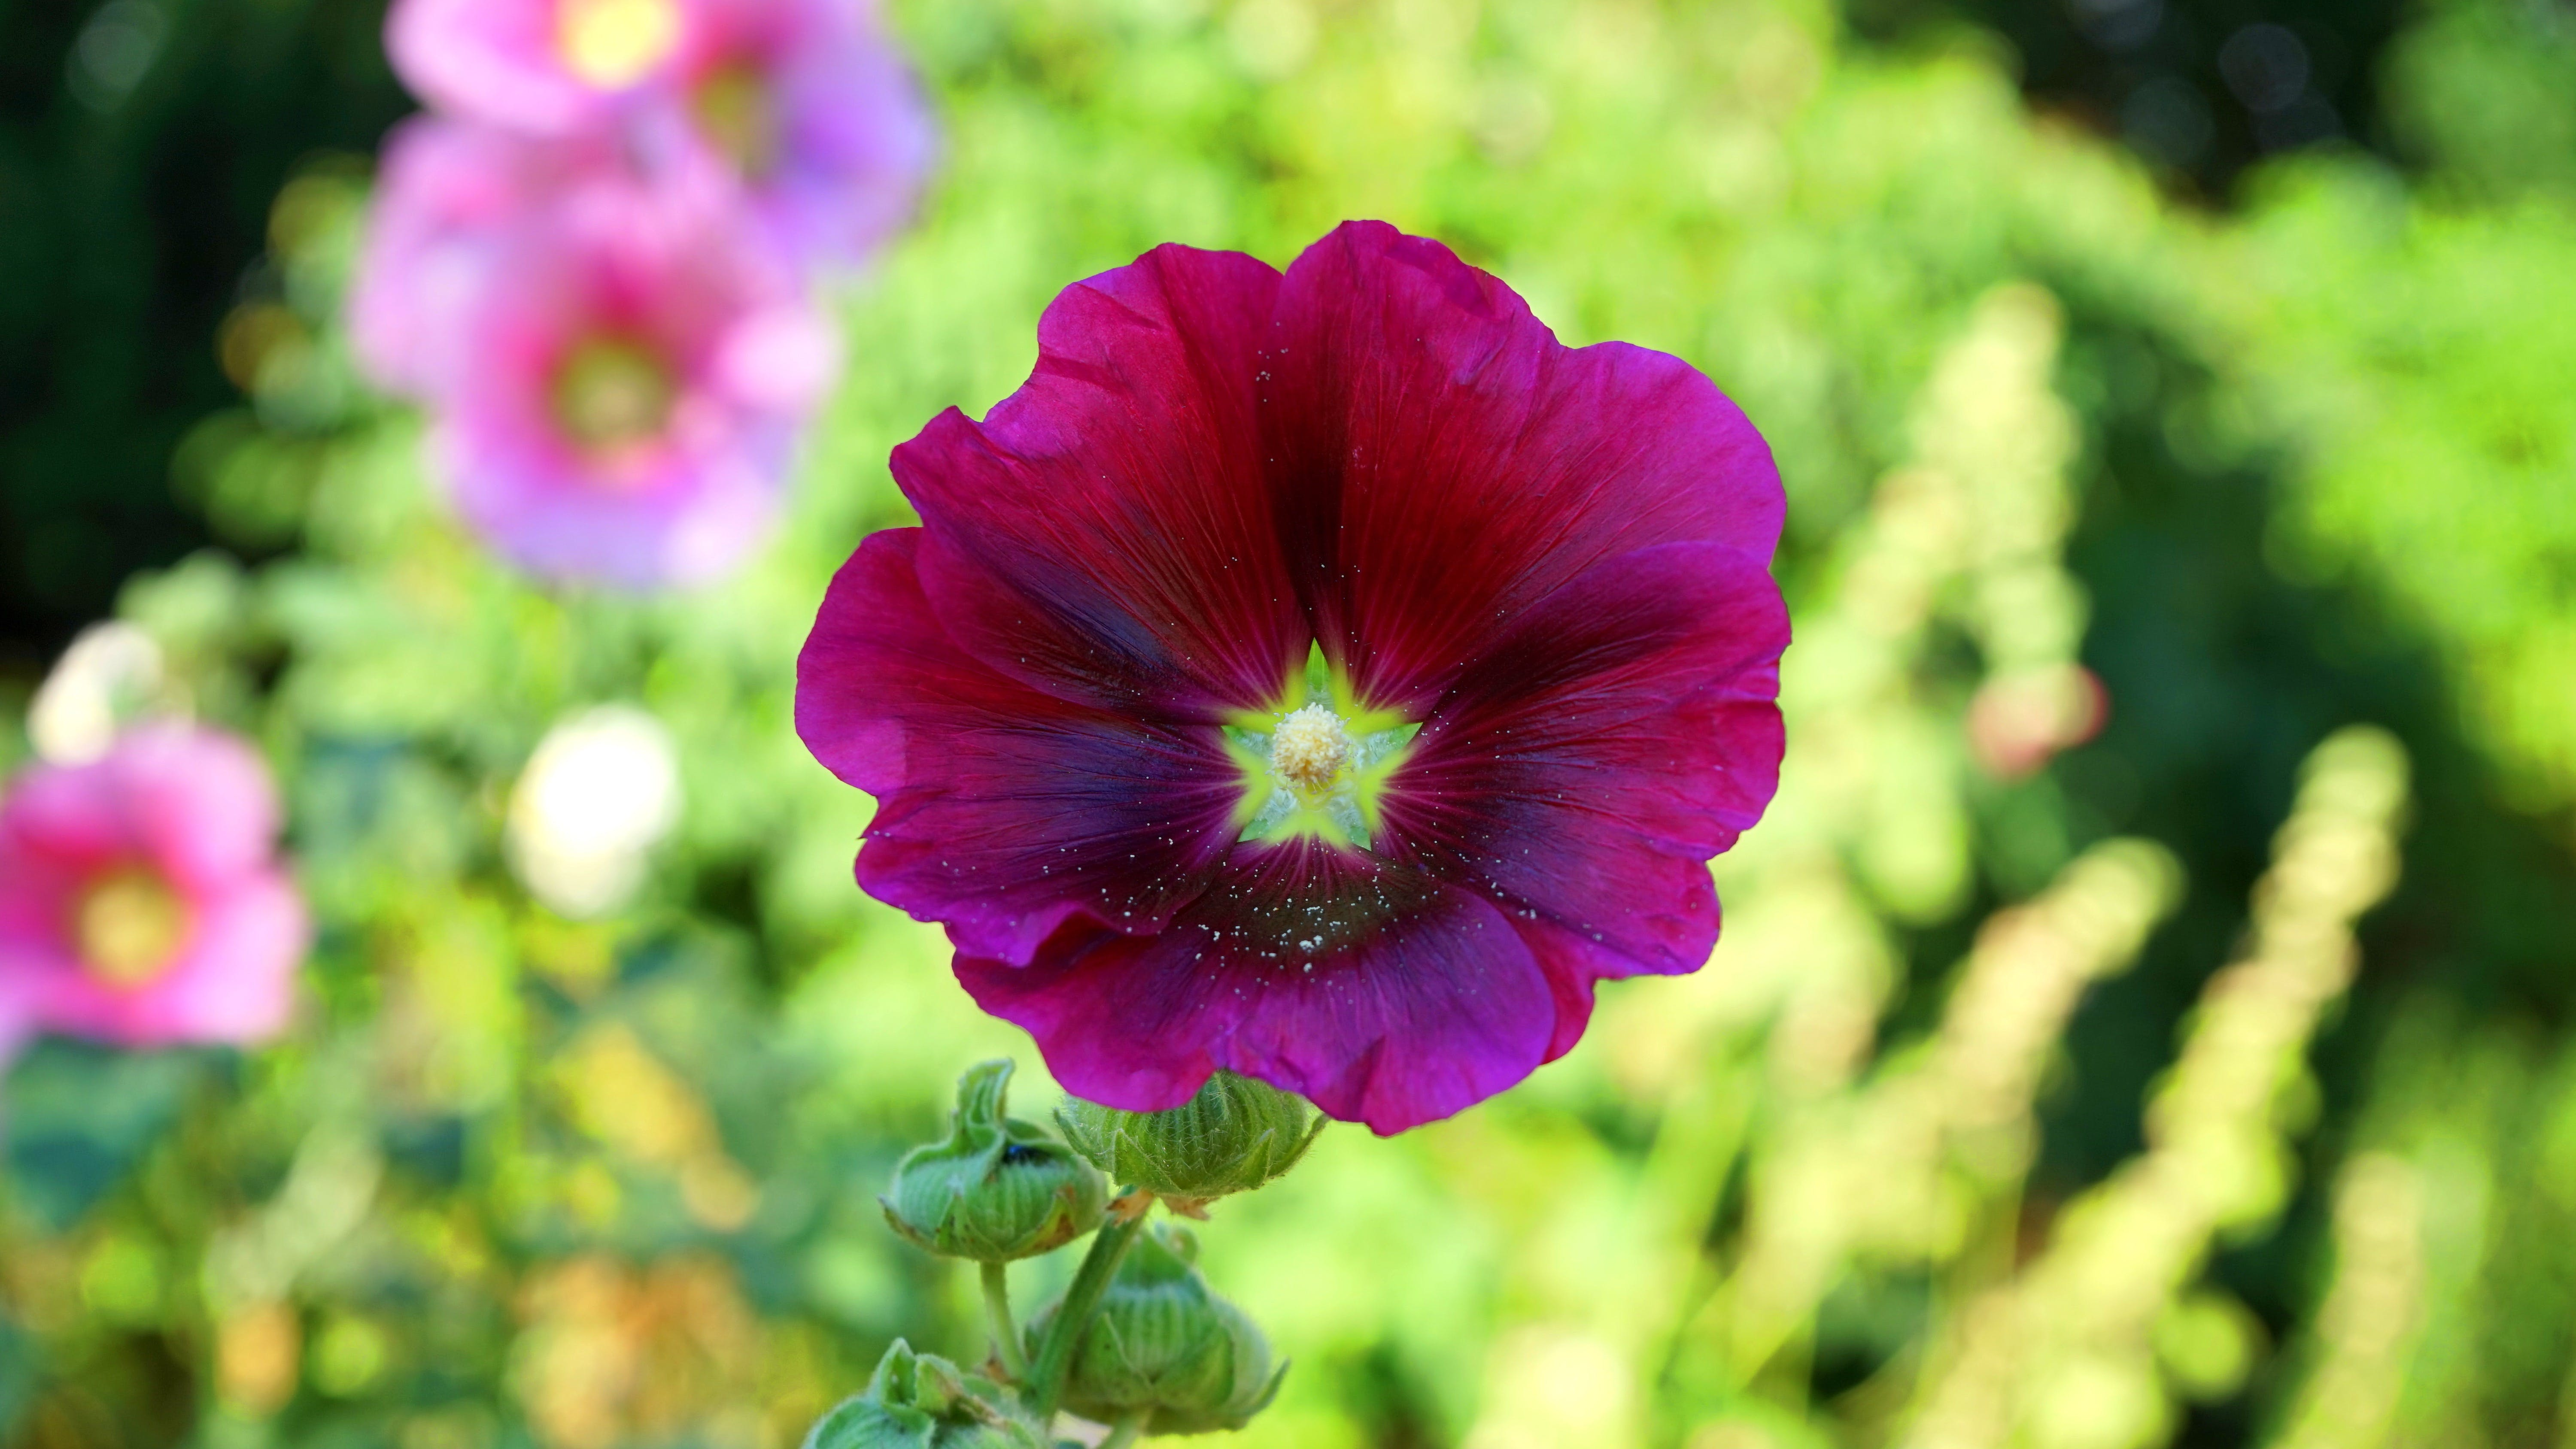 Selective Focus Photography of Purple Hollyhock Flower in Bloom